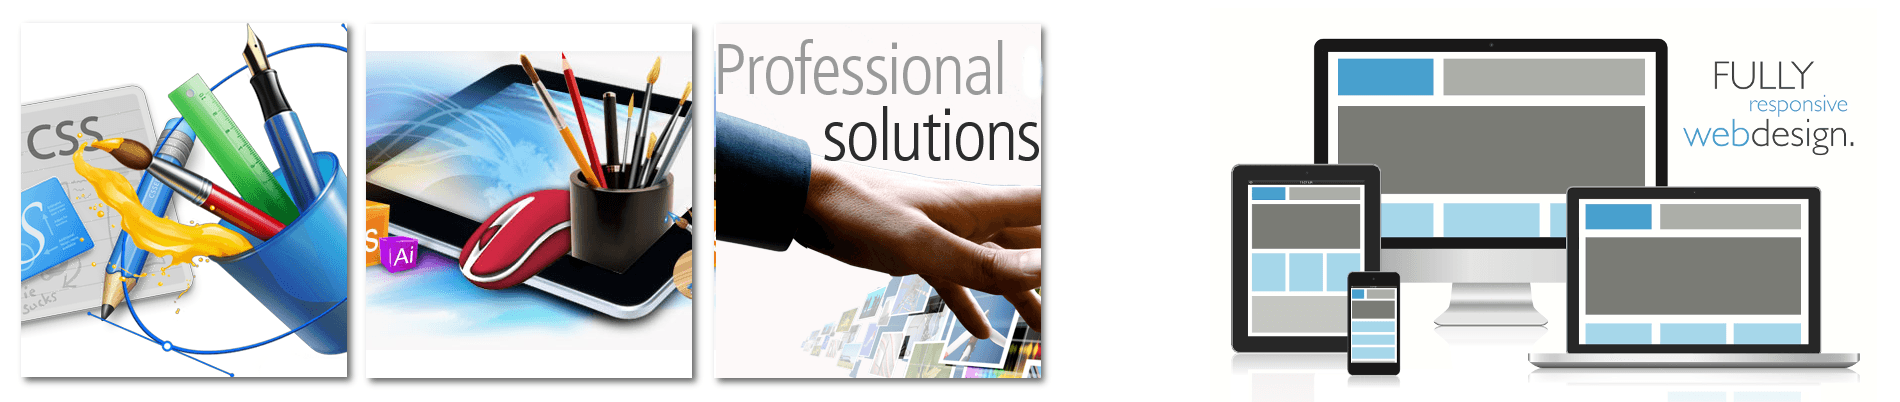 Profession solutions.